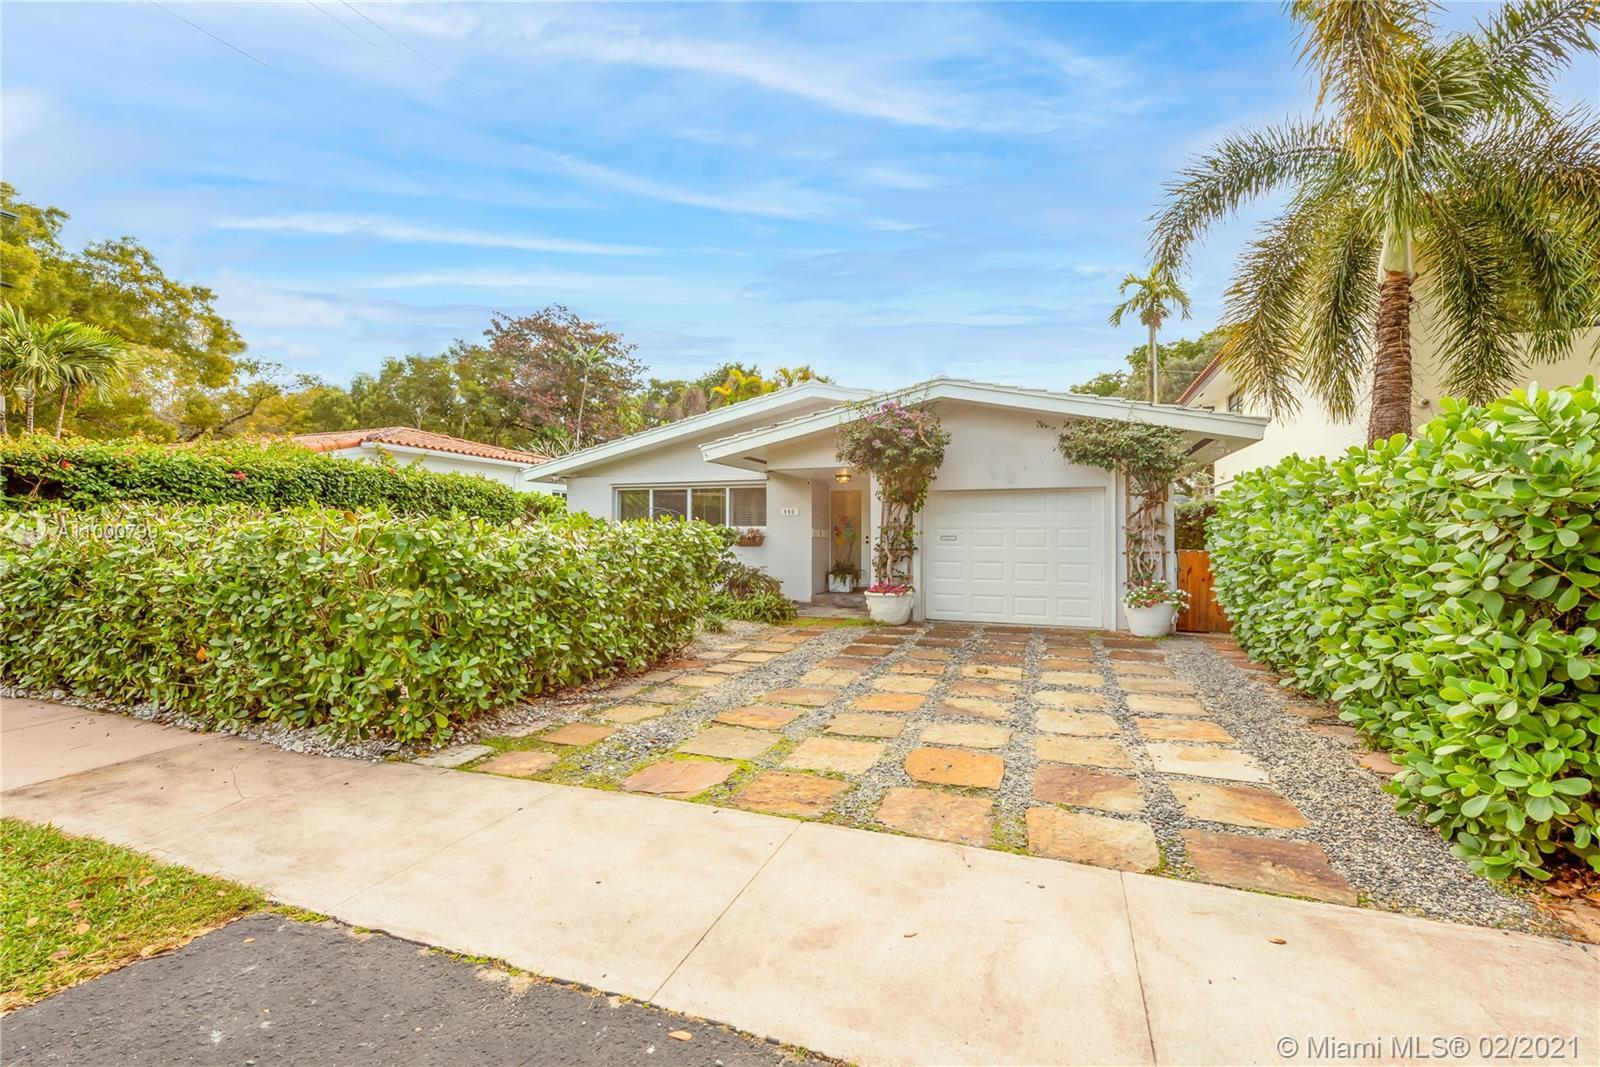 New Listing! Unique, 1959 mid-century two bedroom /two and a half bath home in South Gables just nor